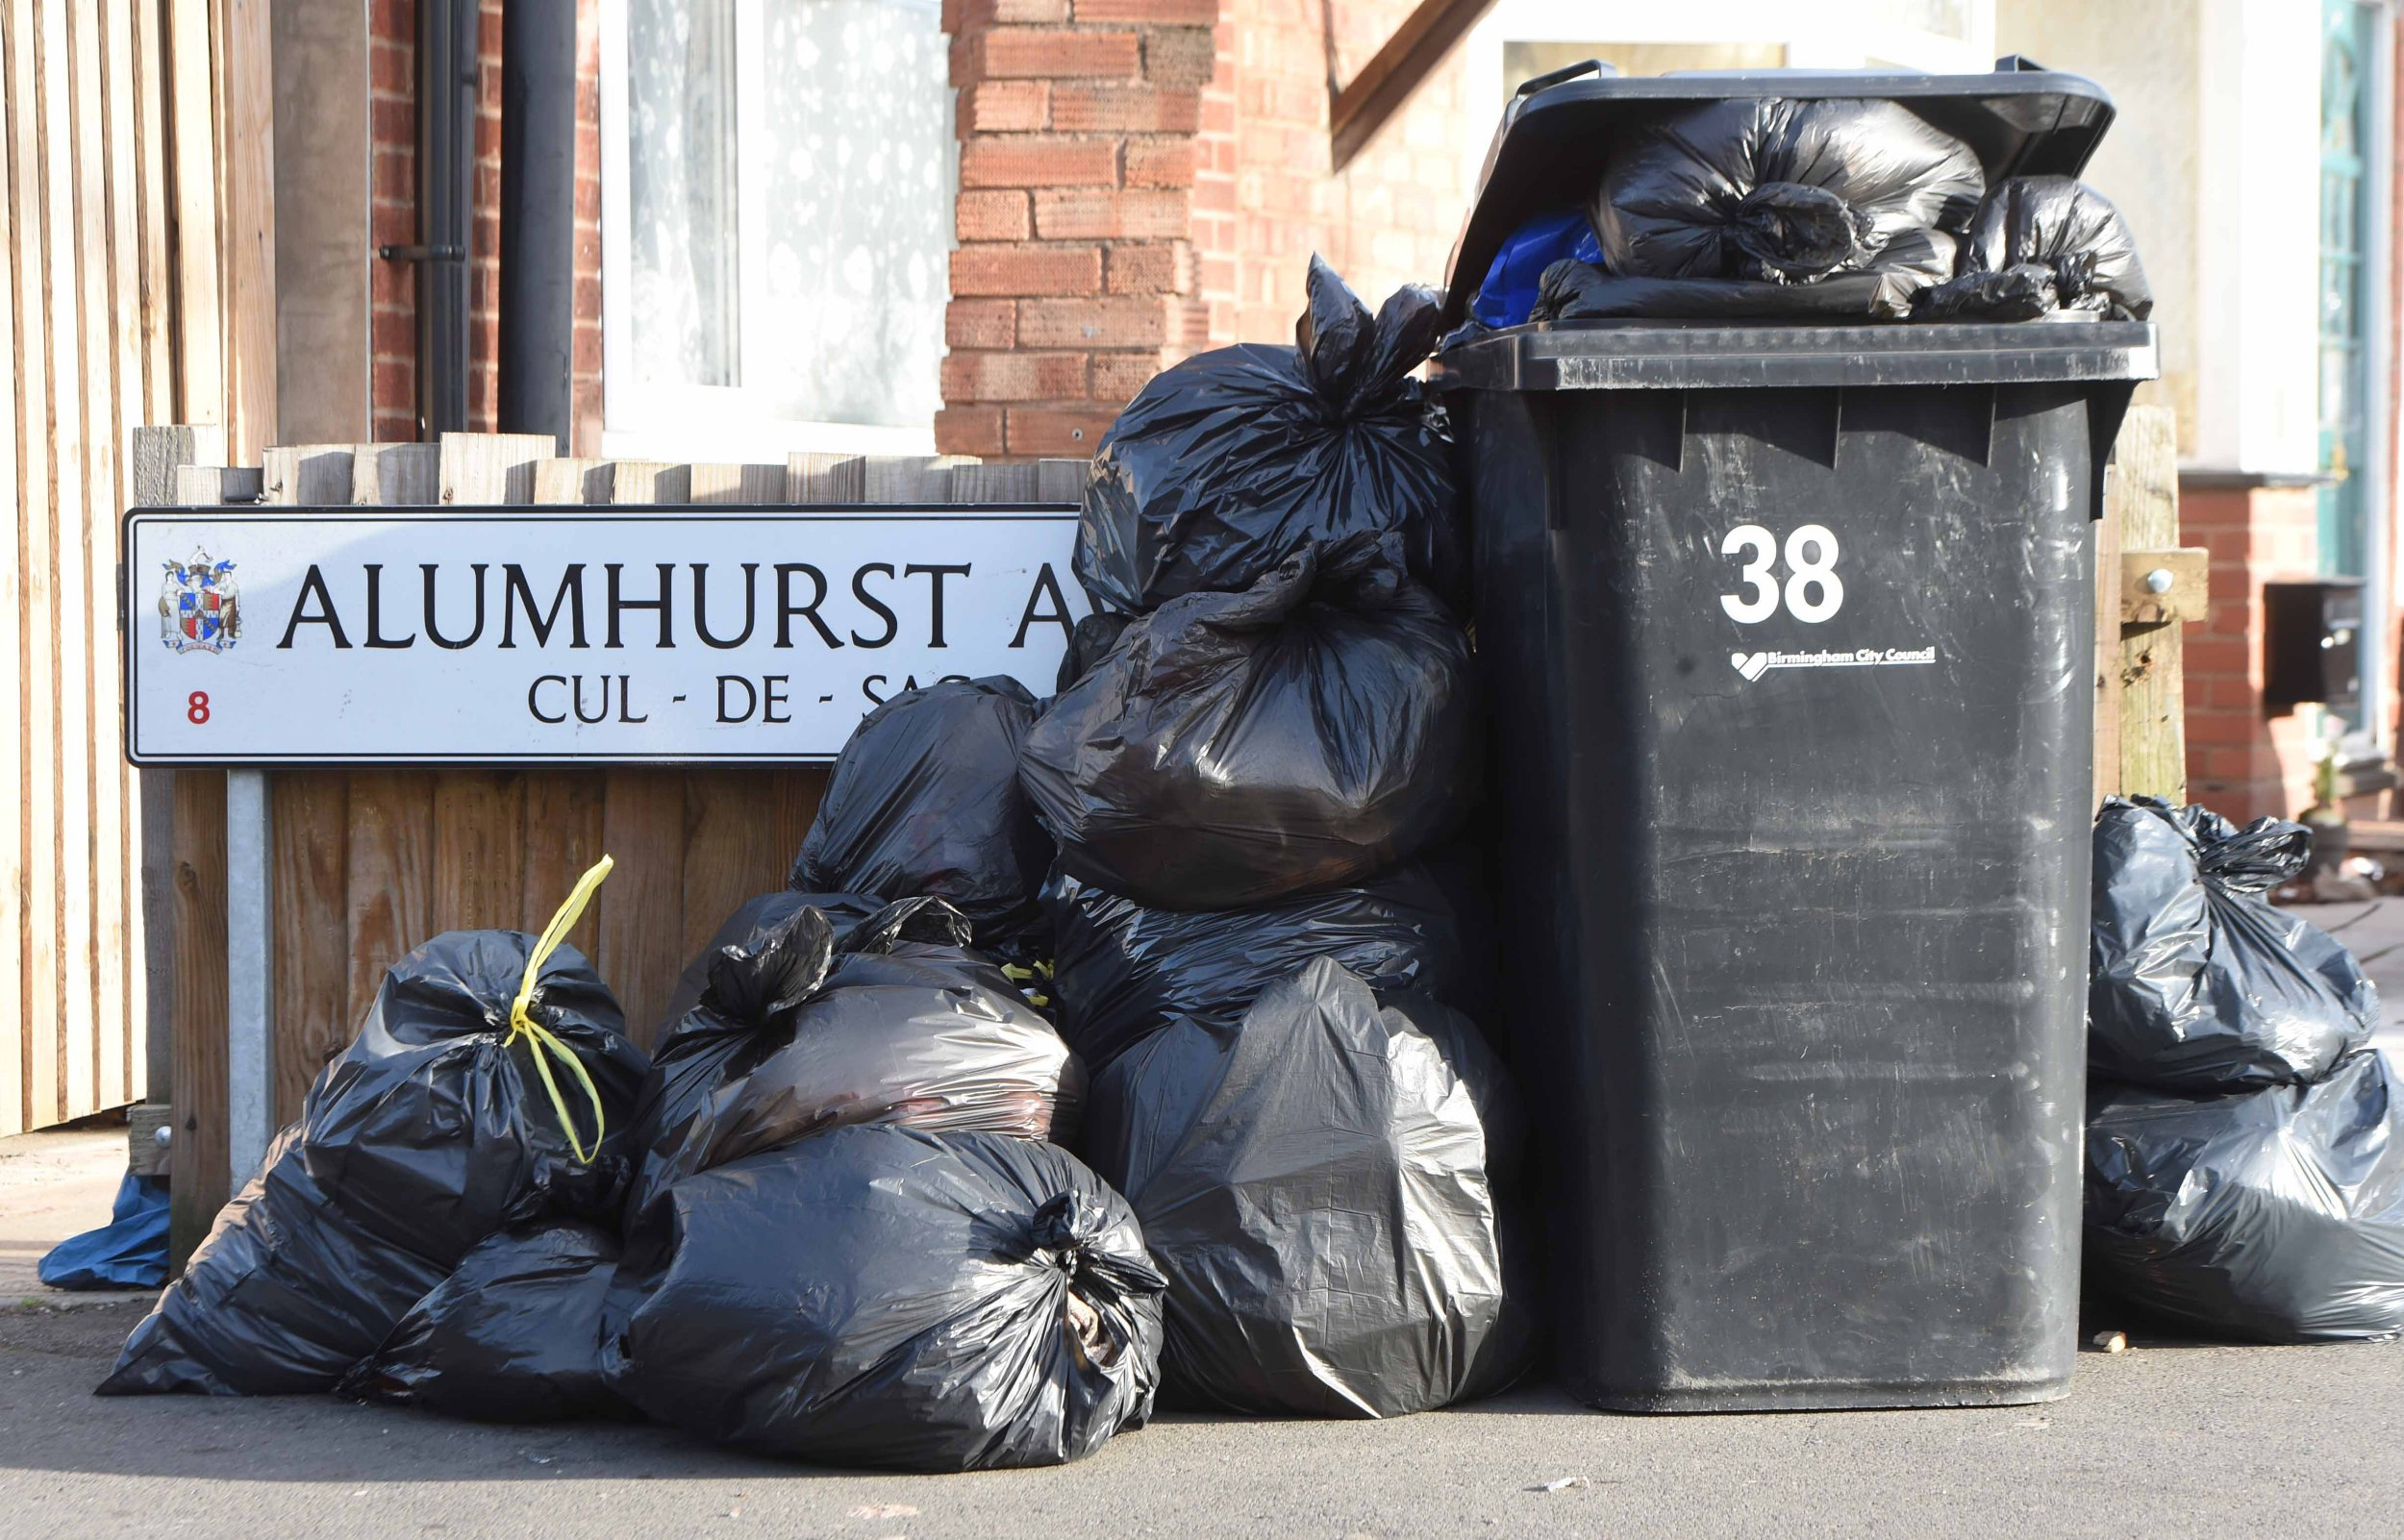 Birmingham is bracing itself for more bin chaos after workers voted to take industrial action - triggering the prospect of even MORE rubbish piling up across the city. Around 30 members of the Unison trade union will work-to-rule and shun overtime after voting unanimously to come out in solidarity with their Unite colleagues. Caption: Bin bags and rubbish piling up outside homes on Alumhurst Avenue in Alum Rock, Birmingham, on January 9, 2019